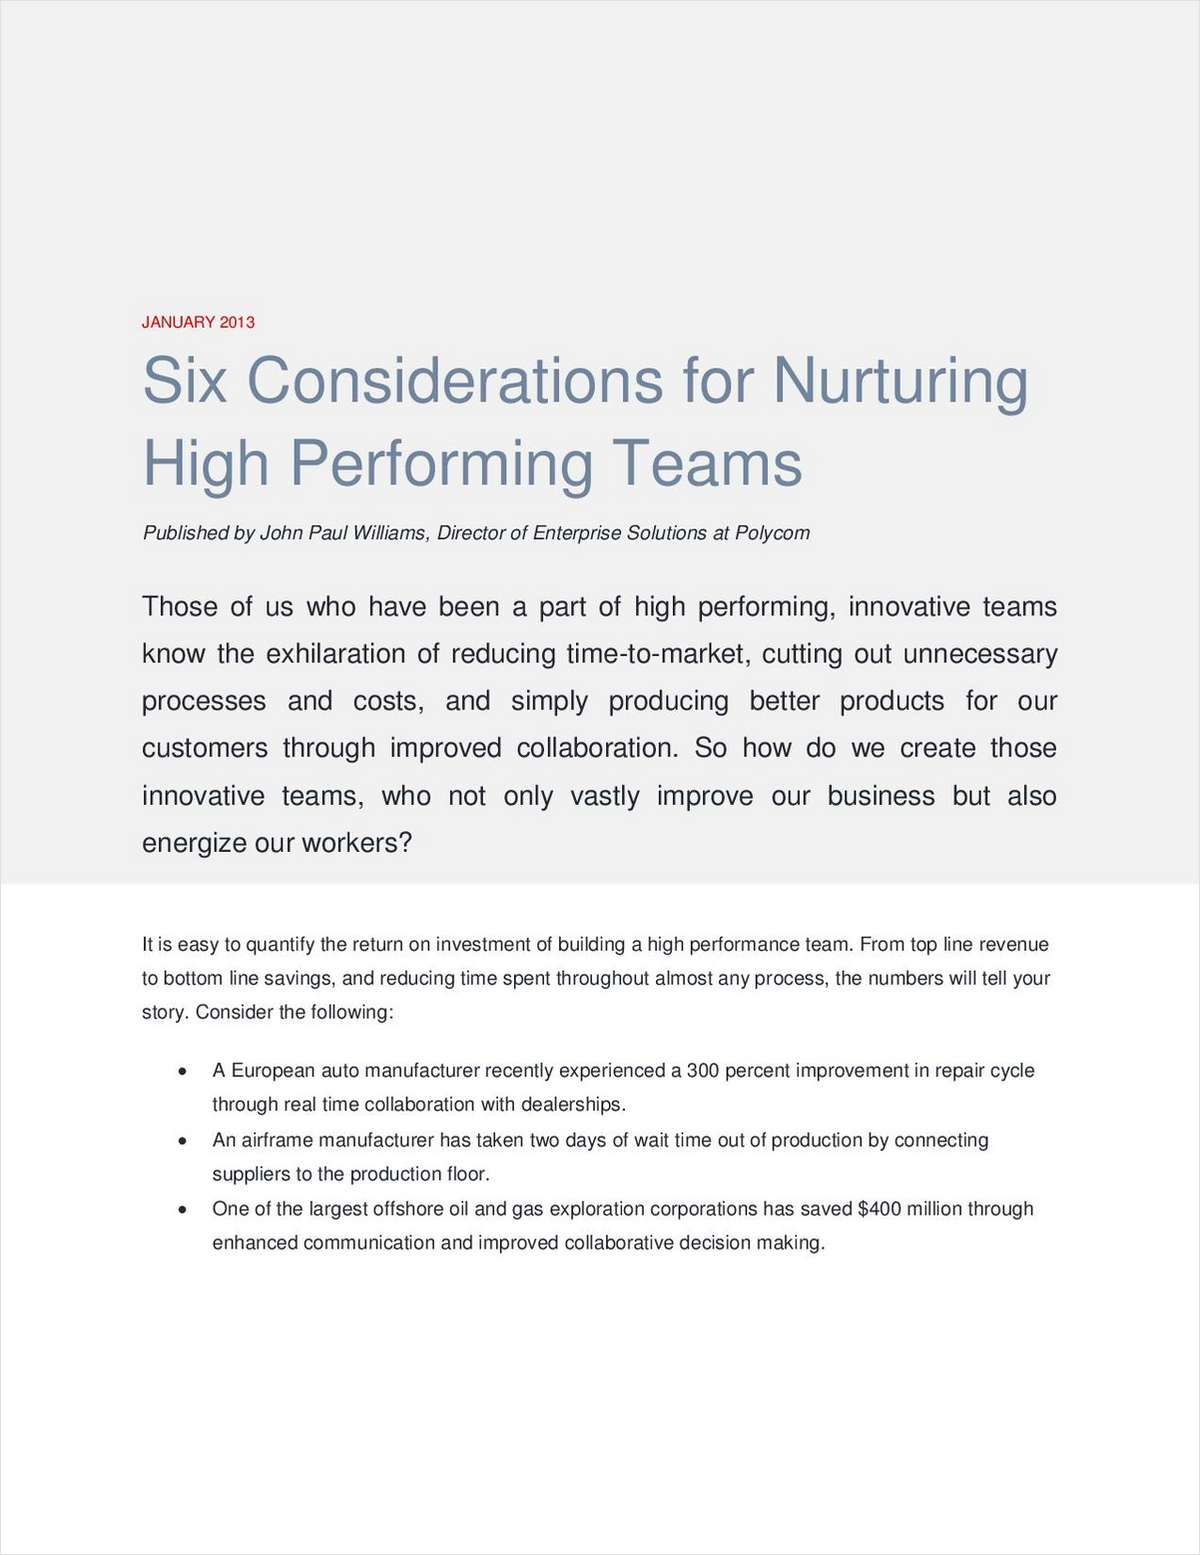 Six Best Practices for Nurturing High Performing Teams